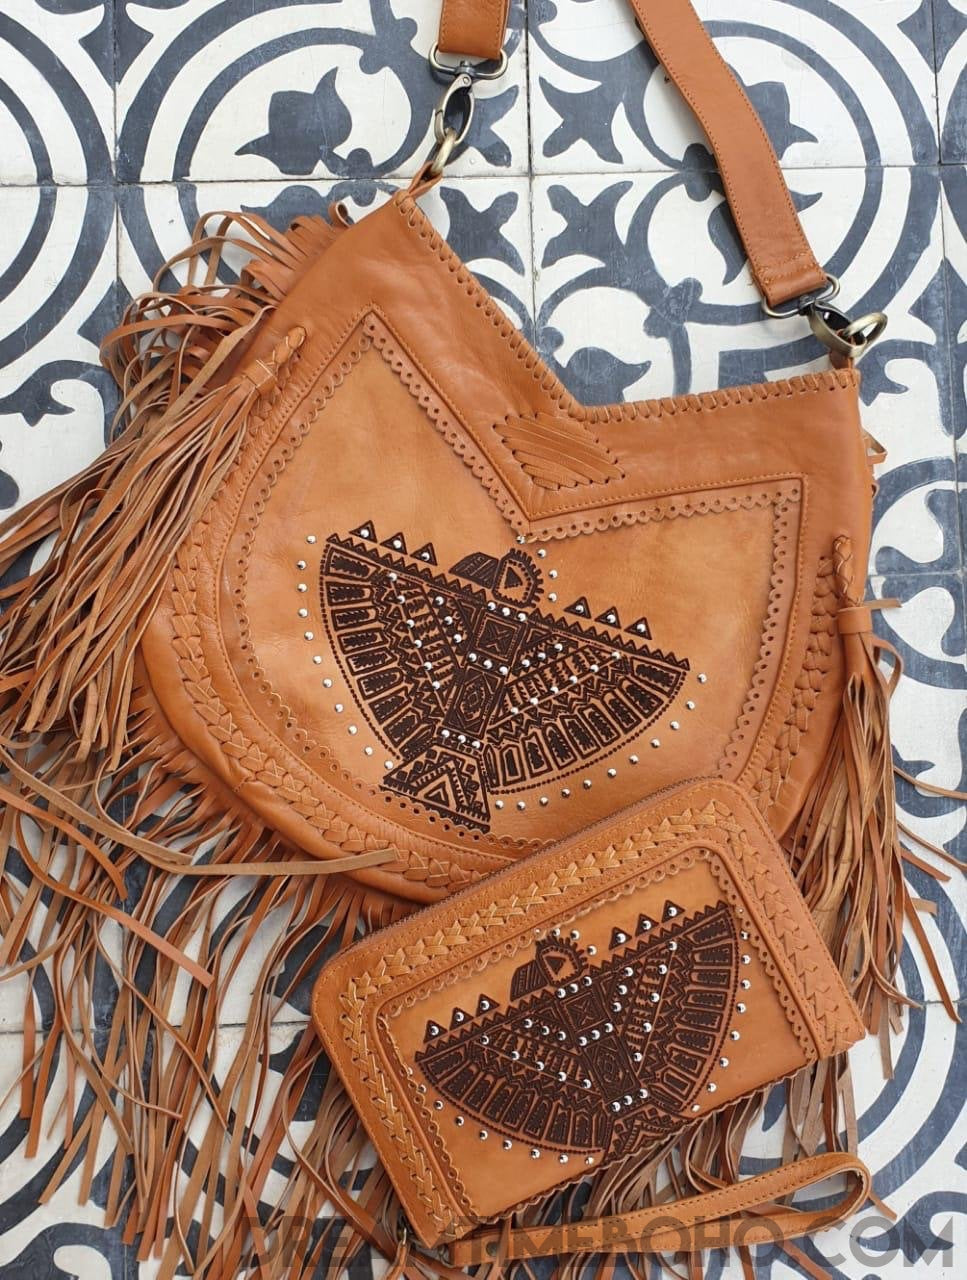 AZTEC EAGLE FRINGED LEATHER BOHO BAG-Boho Fringe Bag-Dreamtime Boho-AZTEC EAGLE BAG-Dreamtime Boho